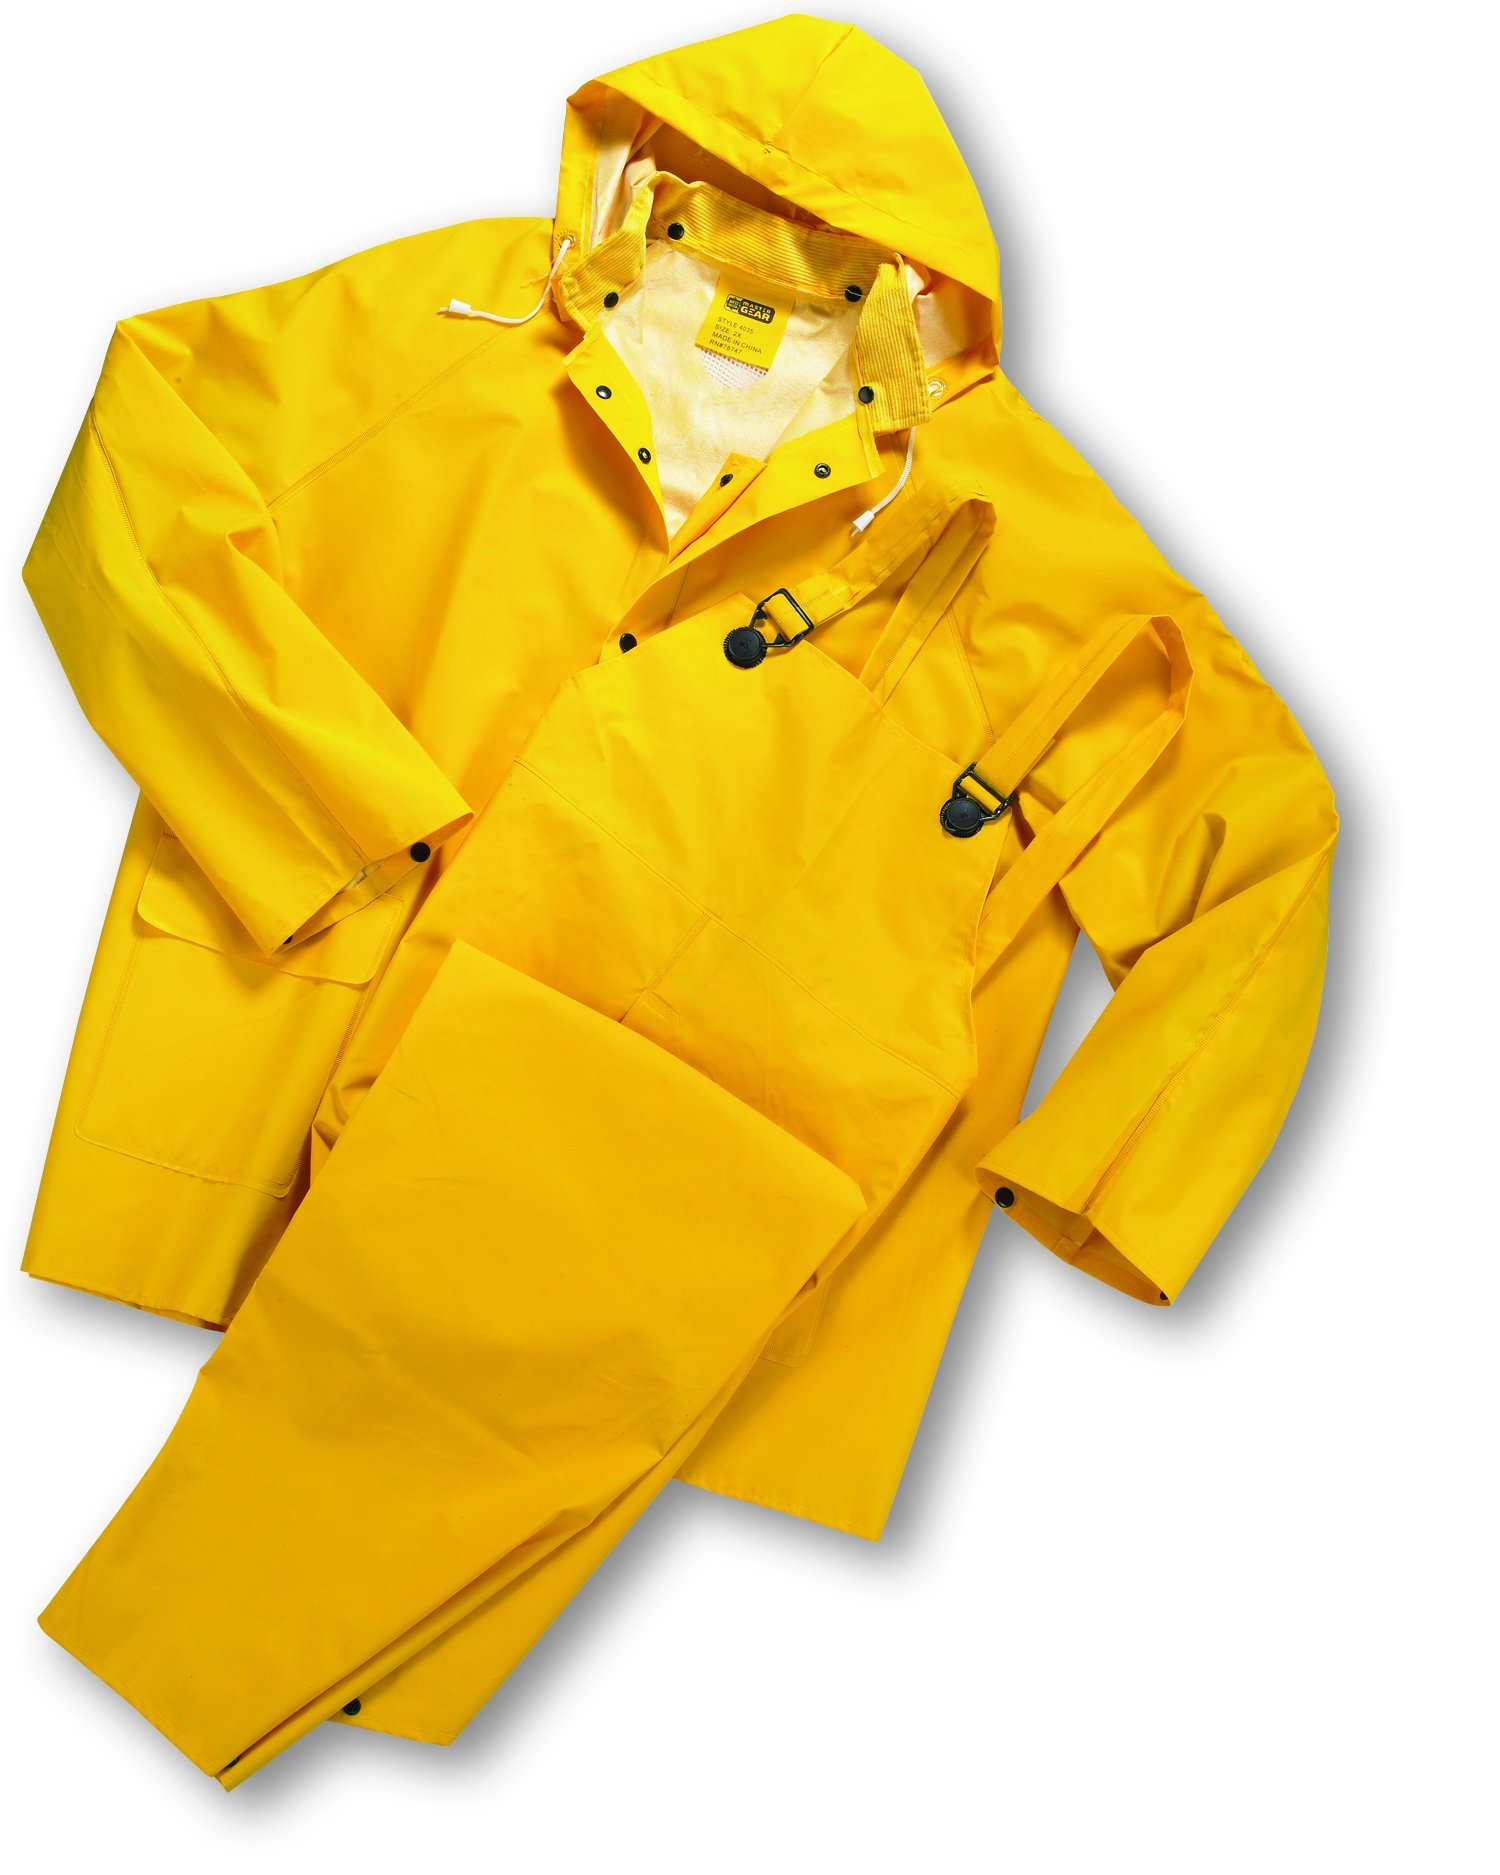 West Chester 4035FR/M Limited Flammability - PVC Over Polyester 3Pcs Rain Suit - Yellow Each